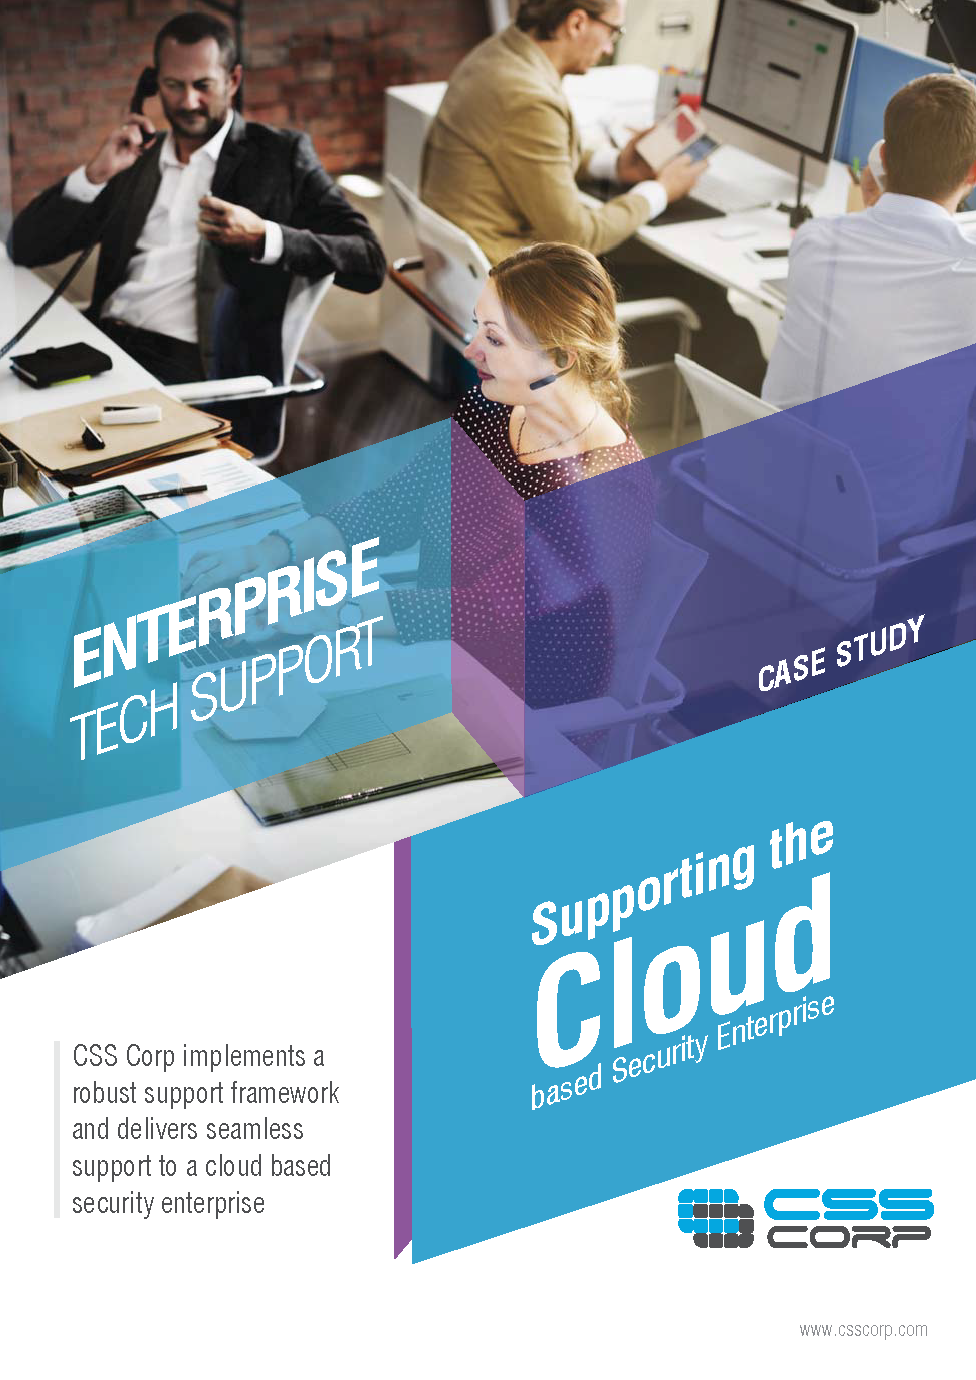 Supporting the cloud based security enterprise